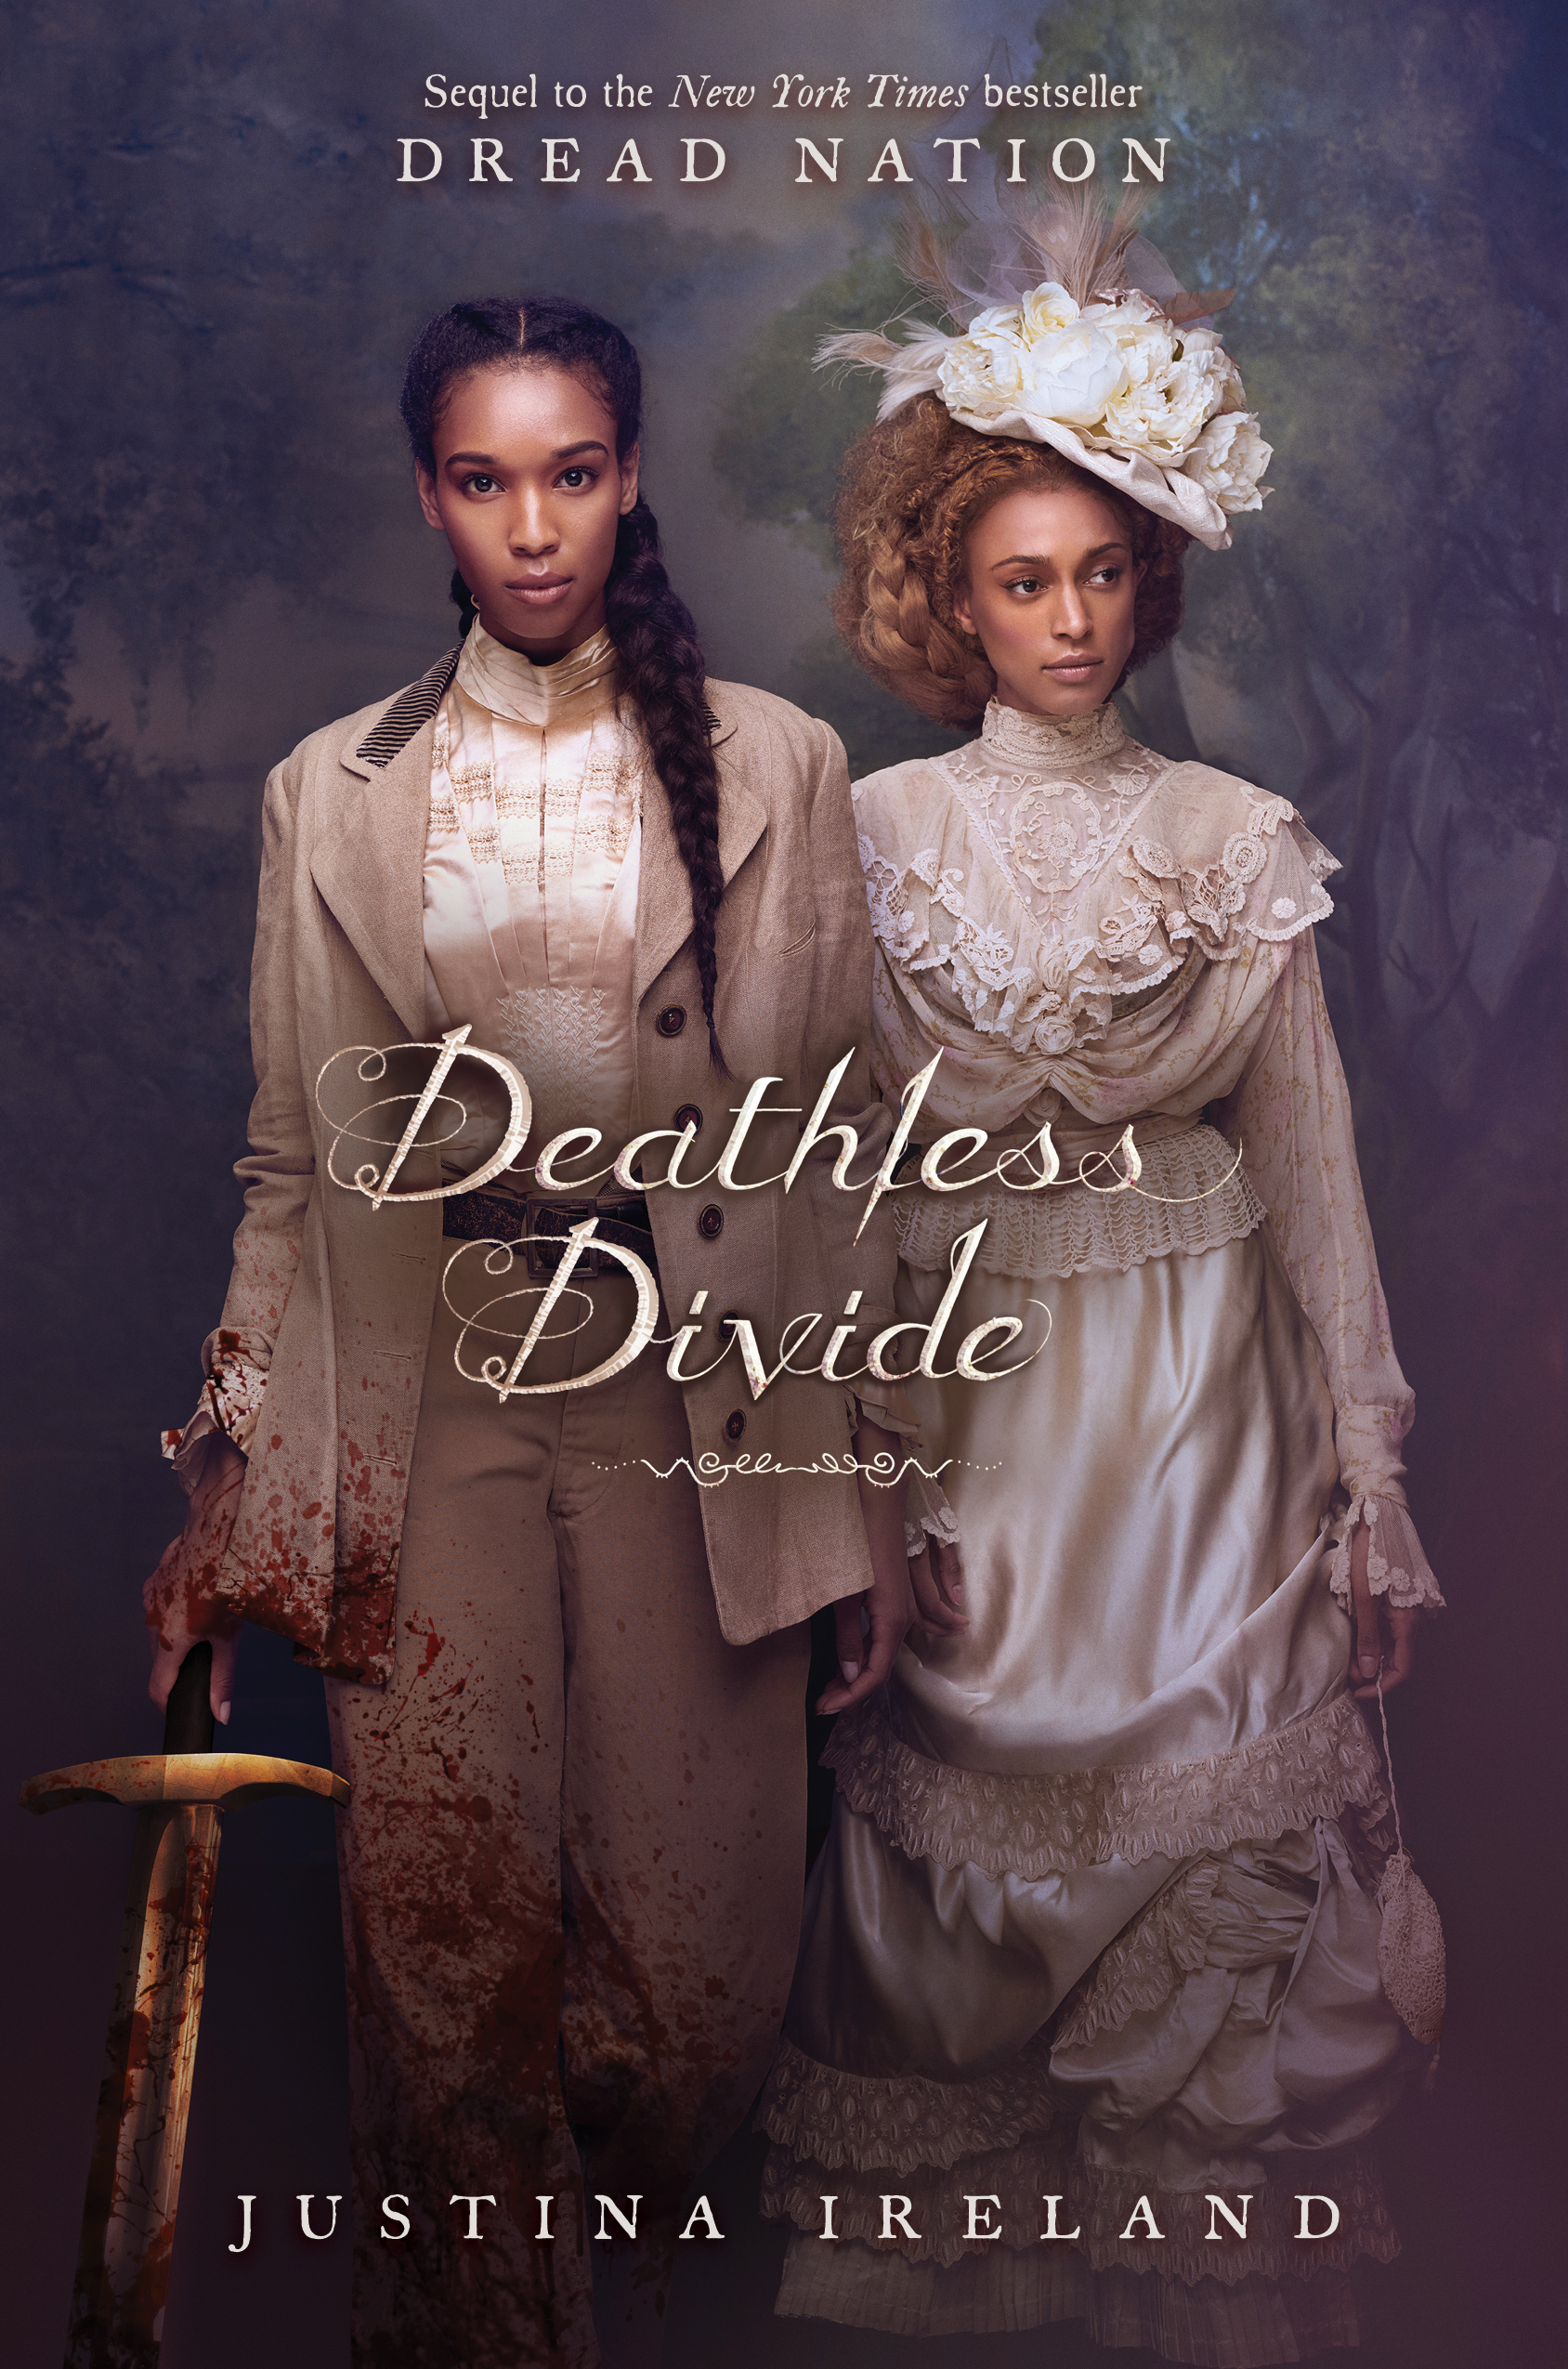 Deathless Divide - The sequel to the New York Times bestselling epic Dread Nation is an unforgettable journey of revenge and salvation across a divided America.After the fall of Summerland, Jane McKeene hoped her life would get simpler: Get out of town, stay alive, and head west to California to find her mother. But nothing is easy when you're a girl trained in putting down the restless dead, and a devastating loss on the road to a protected village called Nicodemus has Jane questioning everything she thought she knew about surviving in 1880s America.What's more, this safe haven is not what it appears—as Jane discovers when she sees familiar faces from Summerland amid this new society. Caught between mysteries and lies, the undead, and her own inner demons, Jane soon finds herself on a dark path of blood and violence that threatens to consume her.But she won't be in it alone.Katherine Deveraux never expected to be allied with Jane McKeene. But after the hell she has endured, she knows friends are hard to come by—and that Jane needs her too, whether Jane wants to admit it or not. Watching Jane's back, however, is more than she bargained for, and when they both reach a breaking point, it's up to Katherine to keep hope alive—even as she begins to fear that there is no happily-ever-after for girls like her.